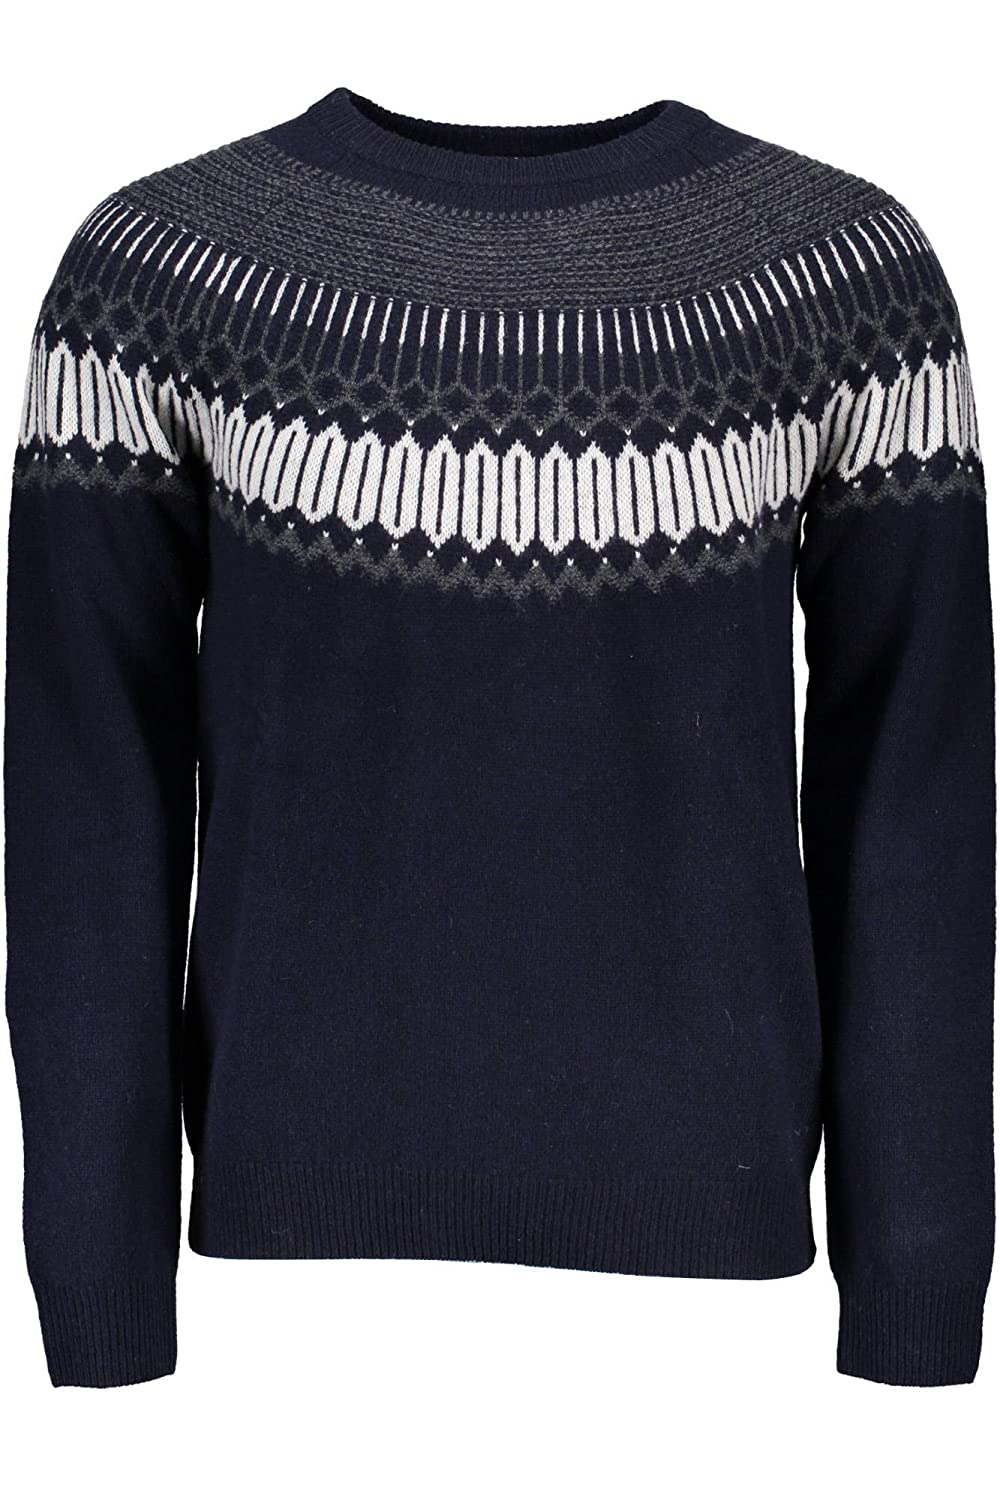 Gant Fairisle Holiday Crew Sweater, Felpa Uomo 8000010